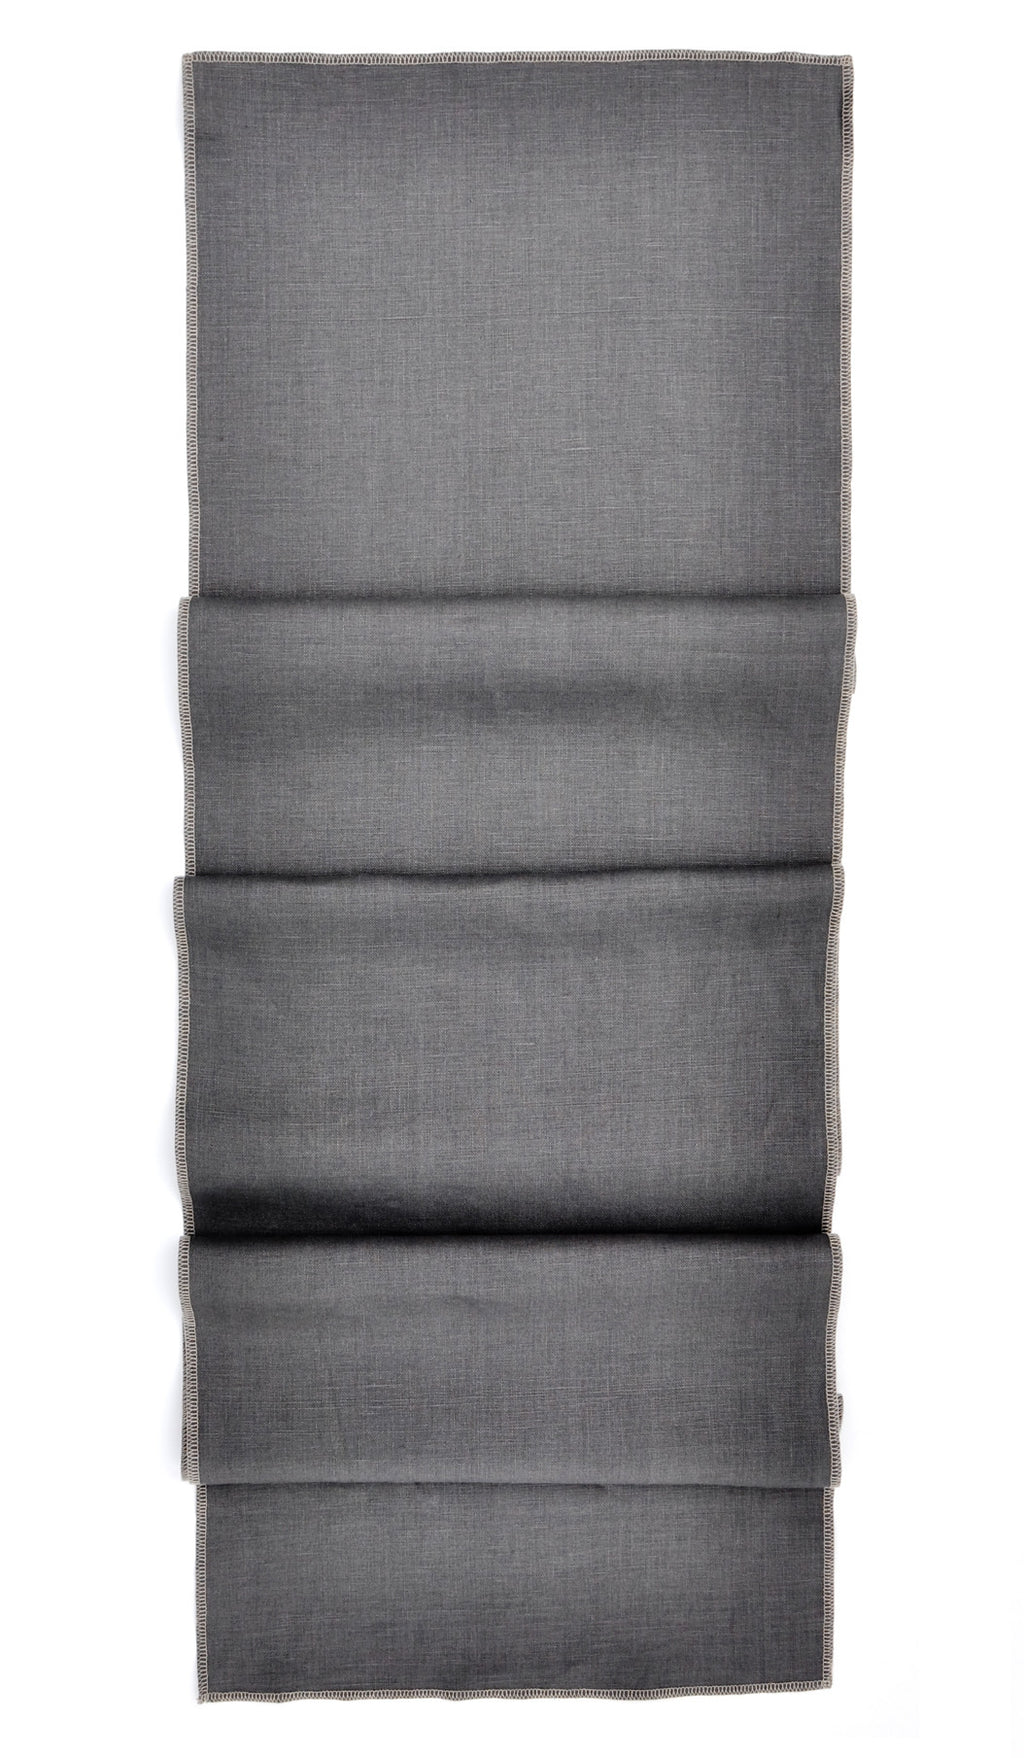 Smoke / Ash: Palette Linen Table Runner in Smoke / Ash - LEIF